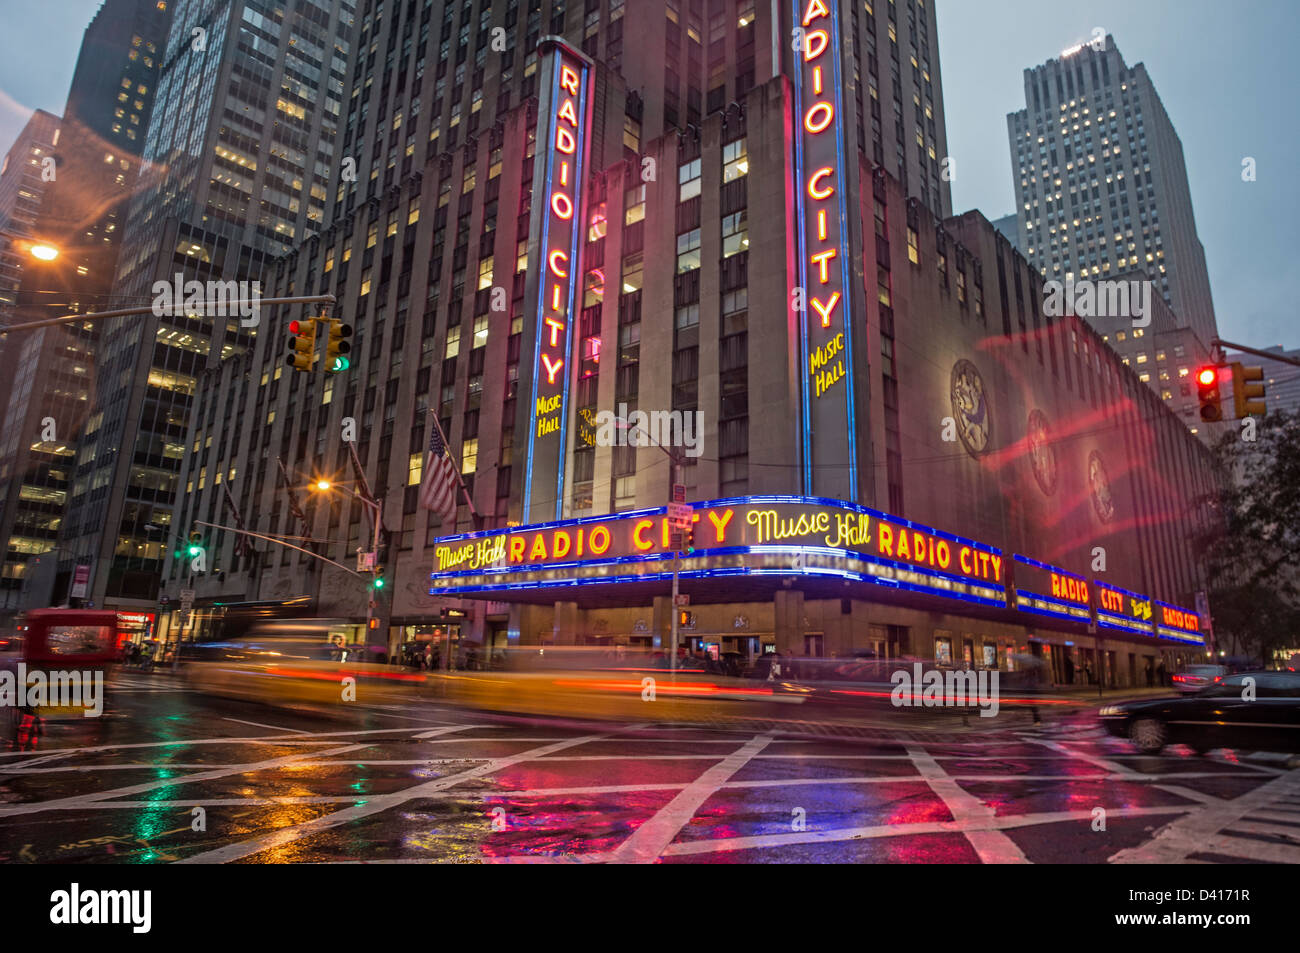 Radio Music Hall, Manhattan, New York City, USA - Stock Image